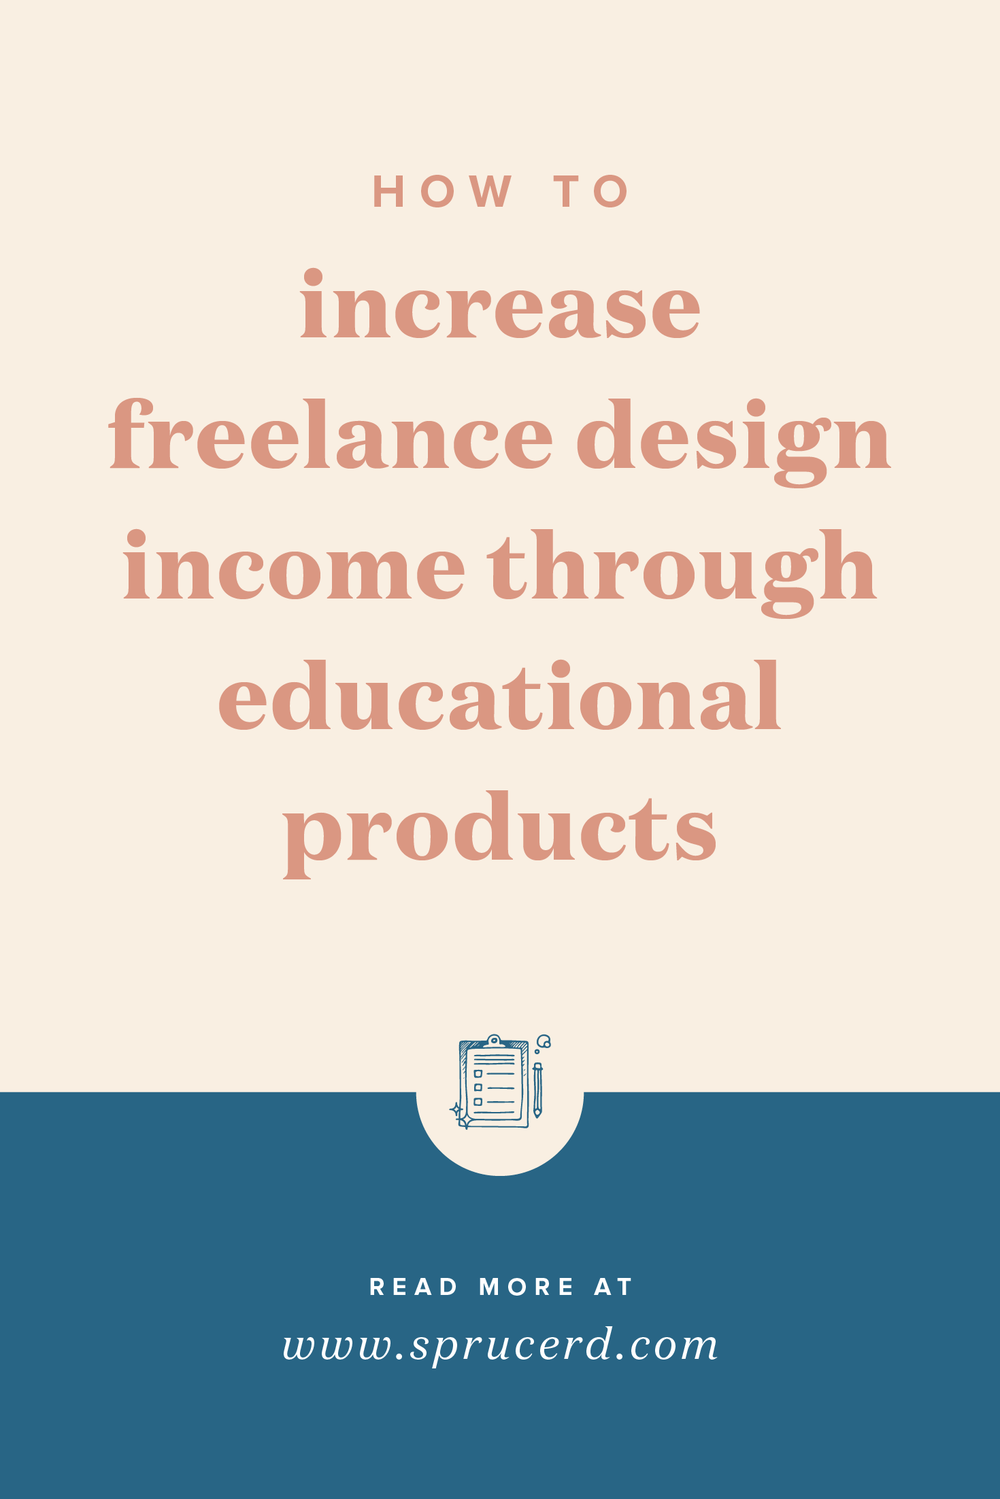 How to increase freelance design income through educational products | Spruce Rd.